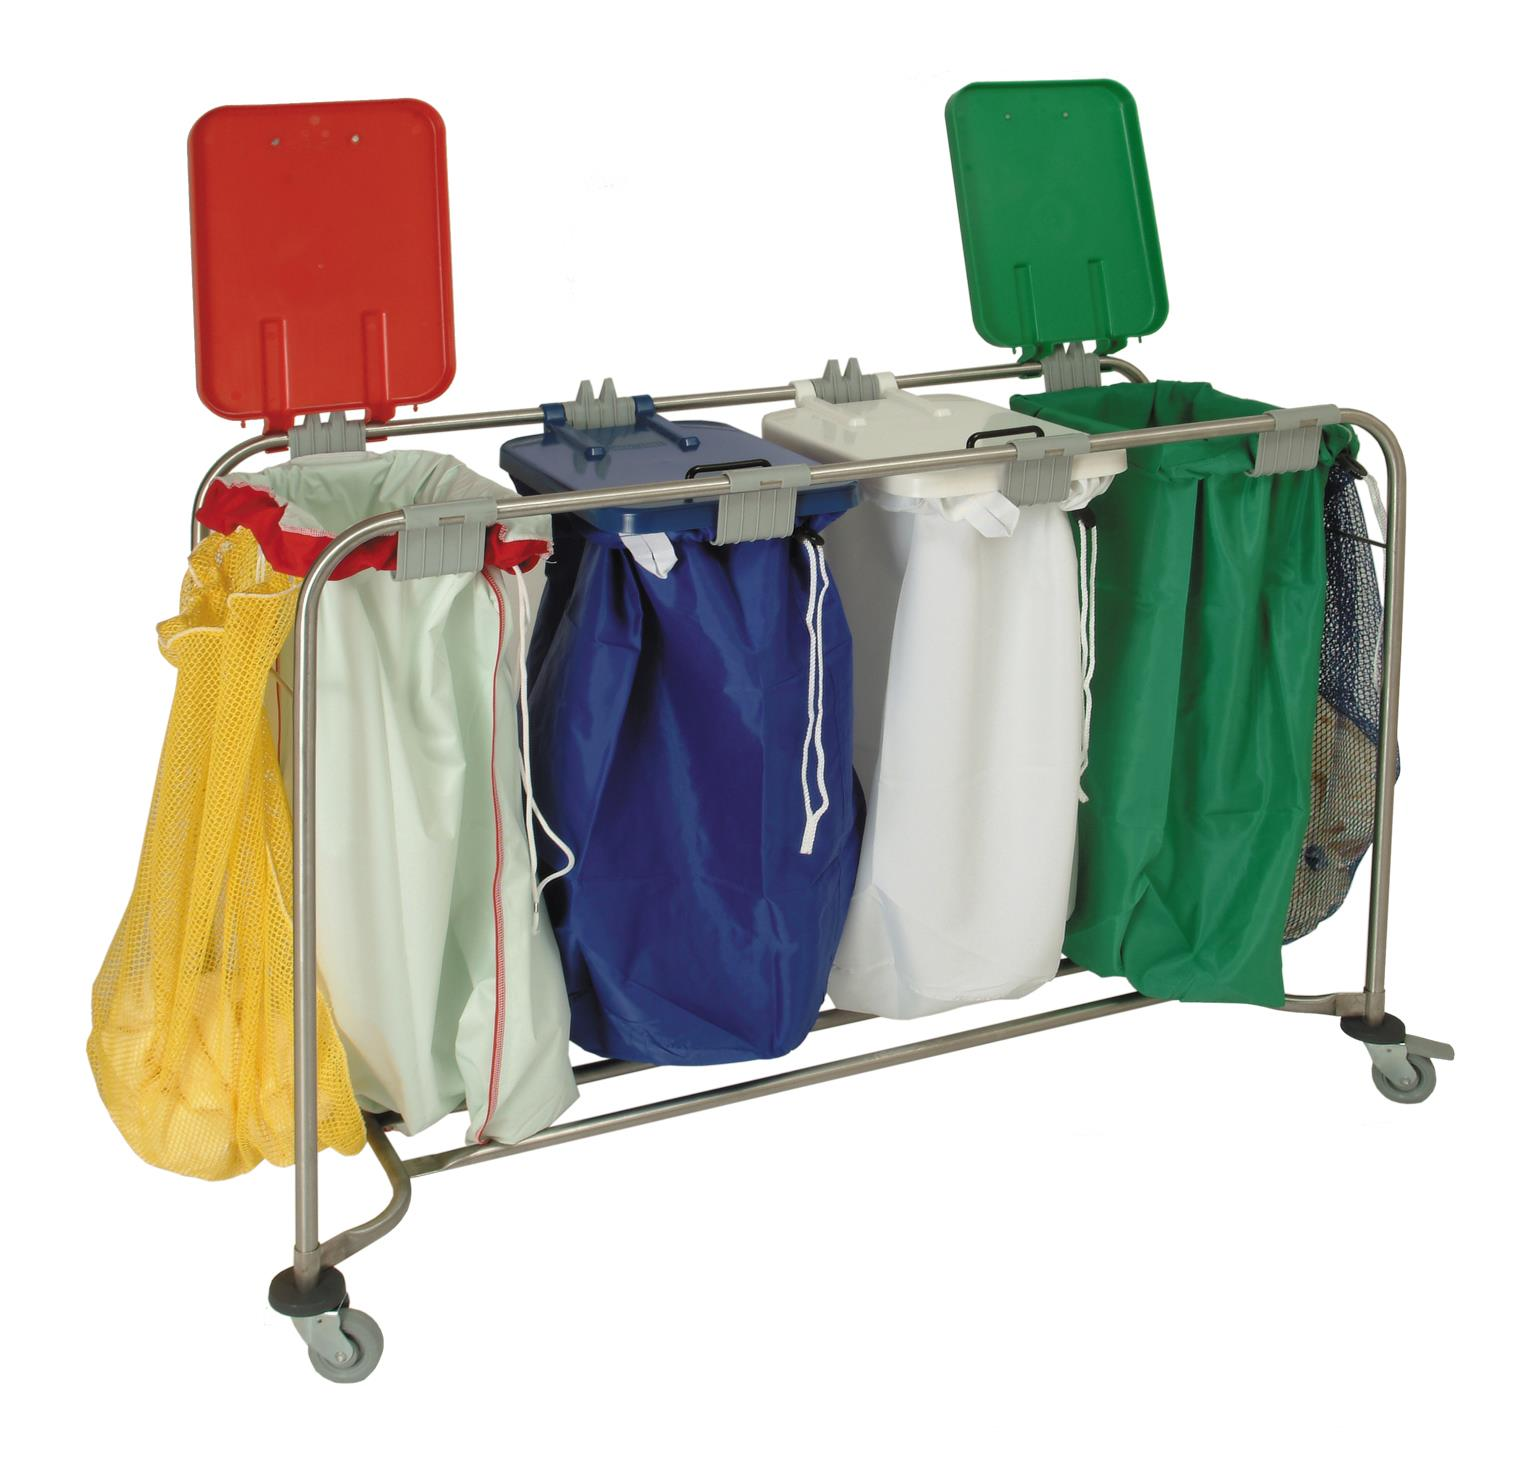 LAUNDRY CART - 4 BAG